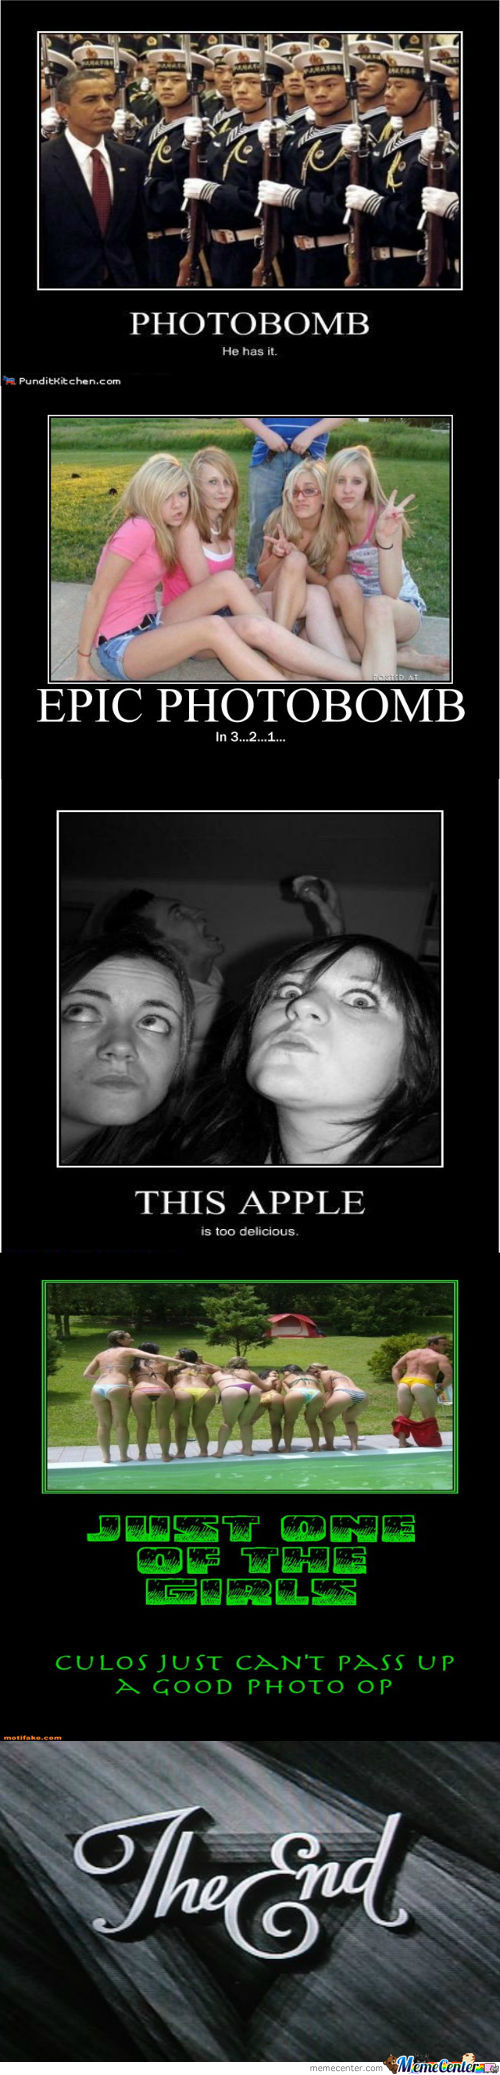 Demotivational Photobombs... Is There Any Greater Fail?